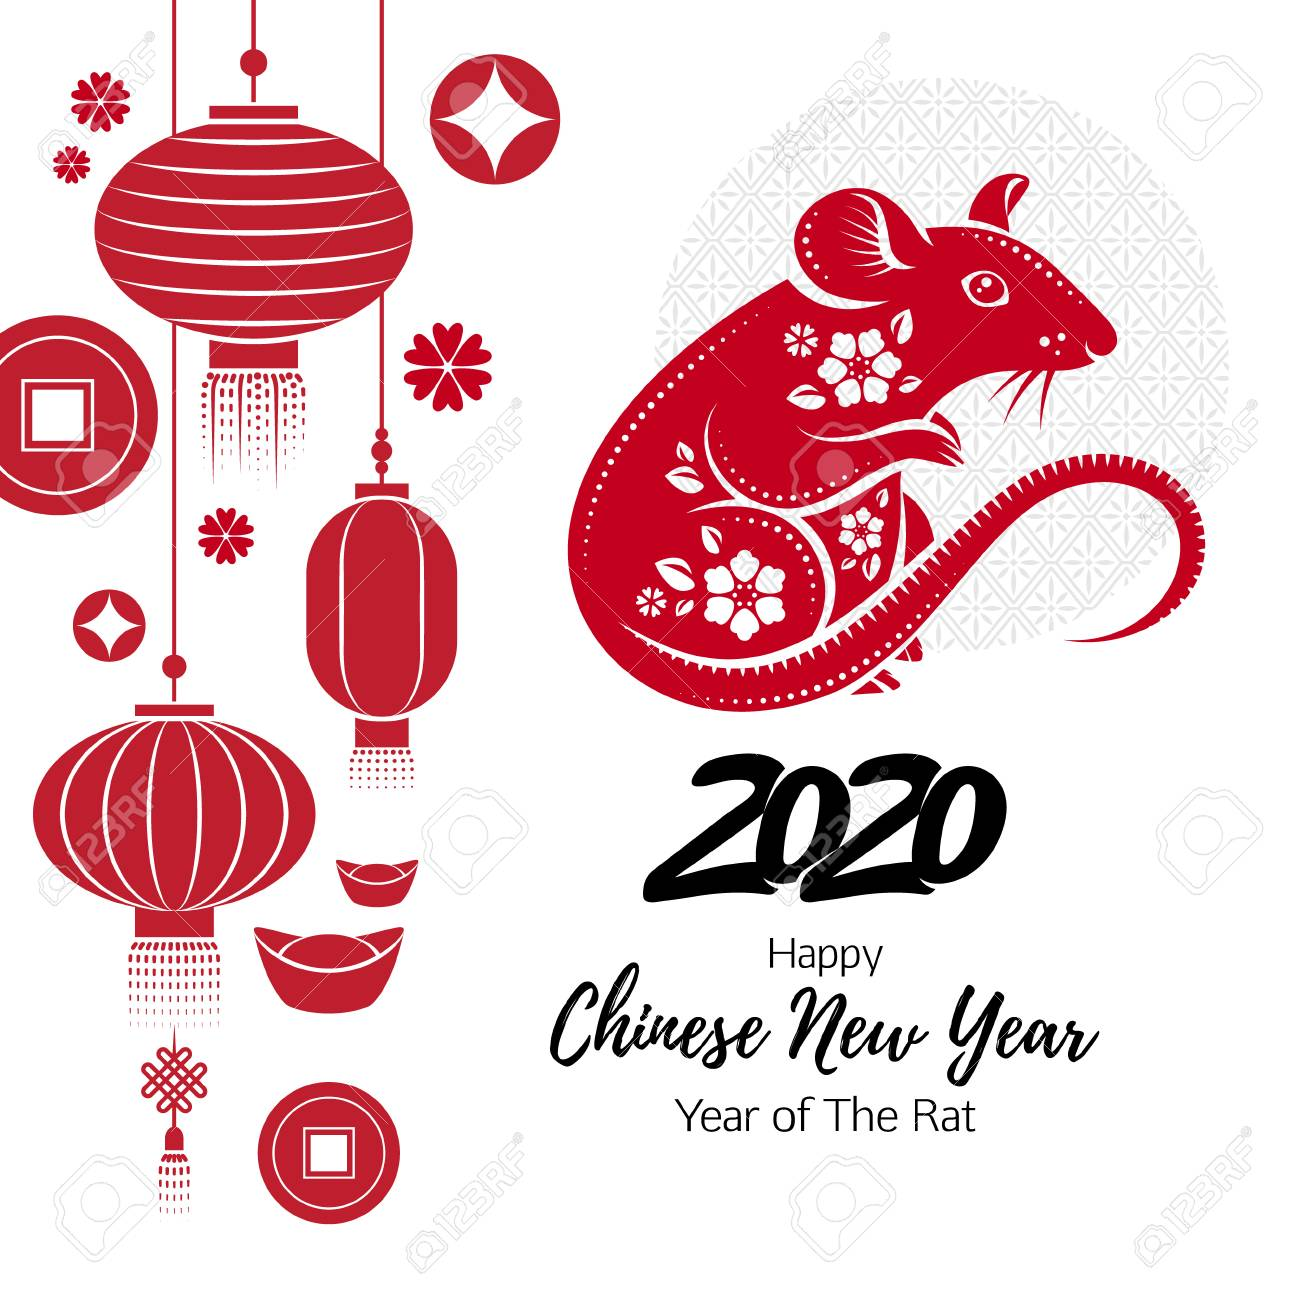 2020 Happy Chinese new year background with Rat. - 122477970